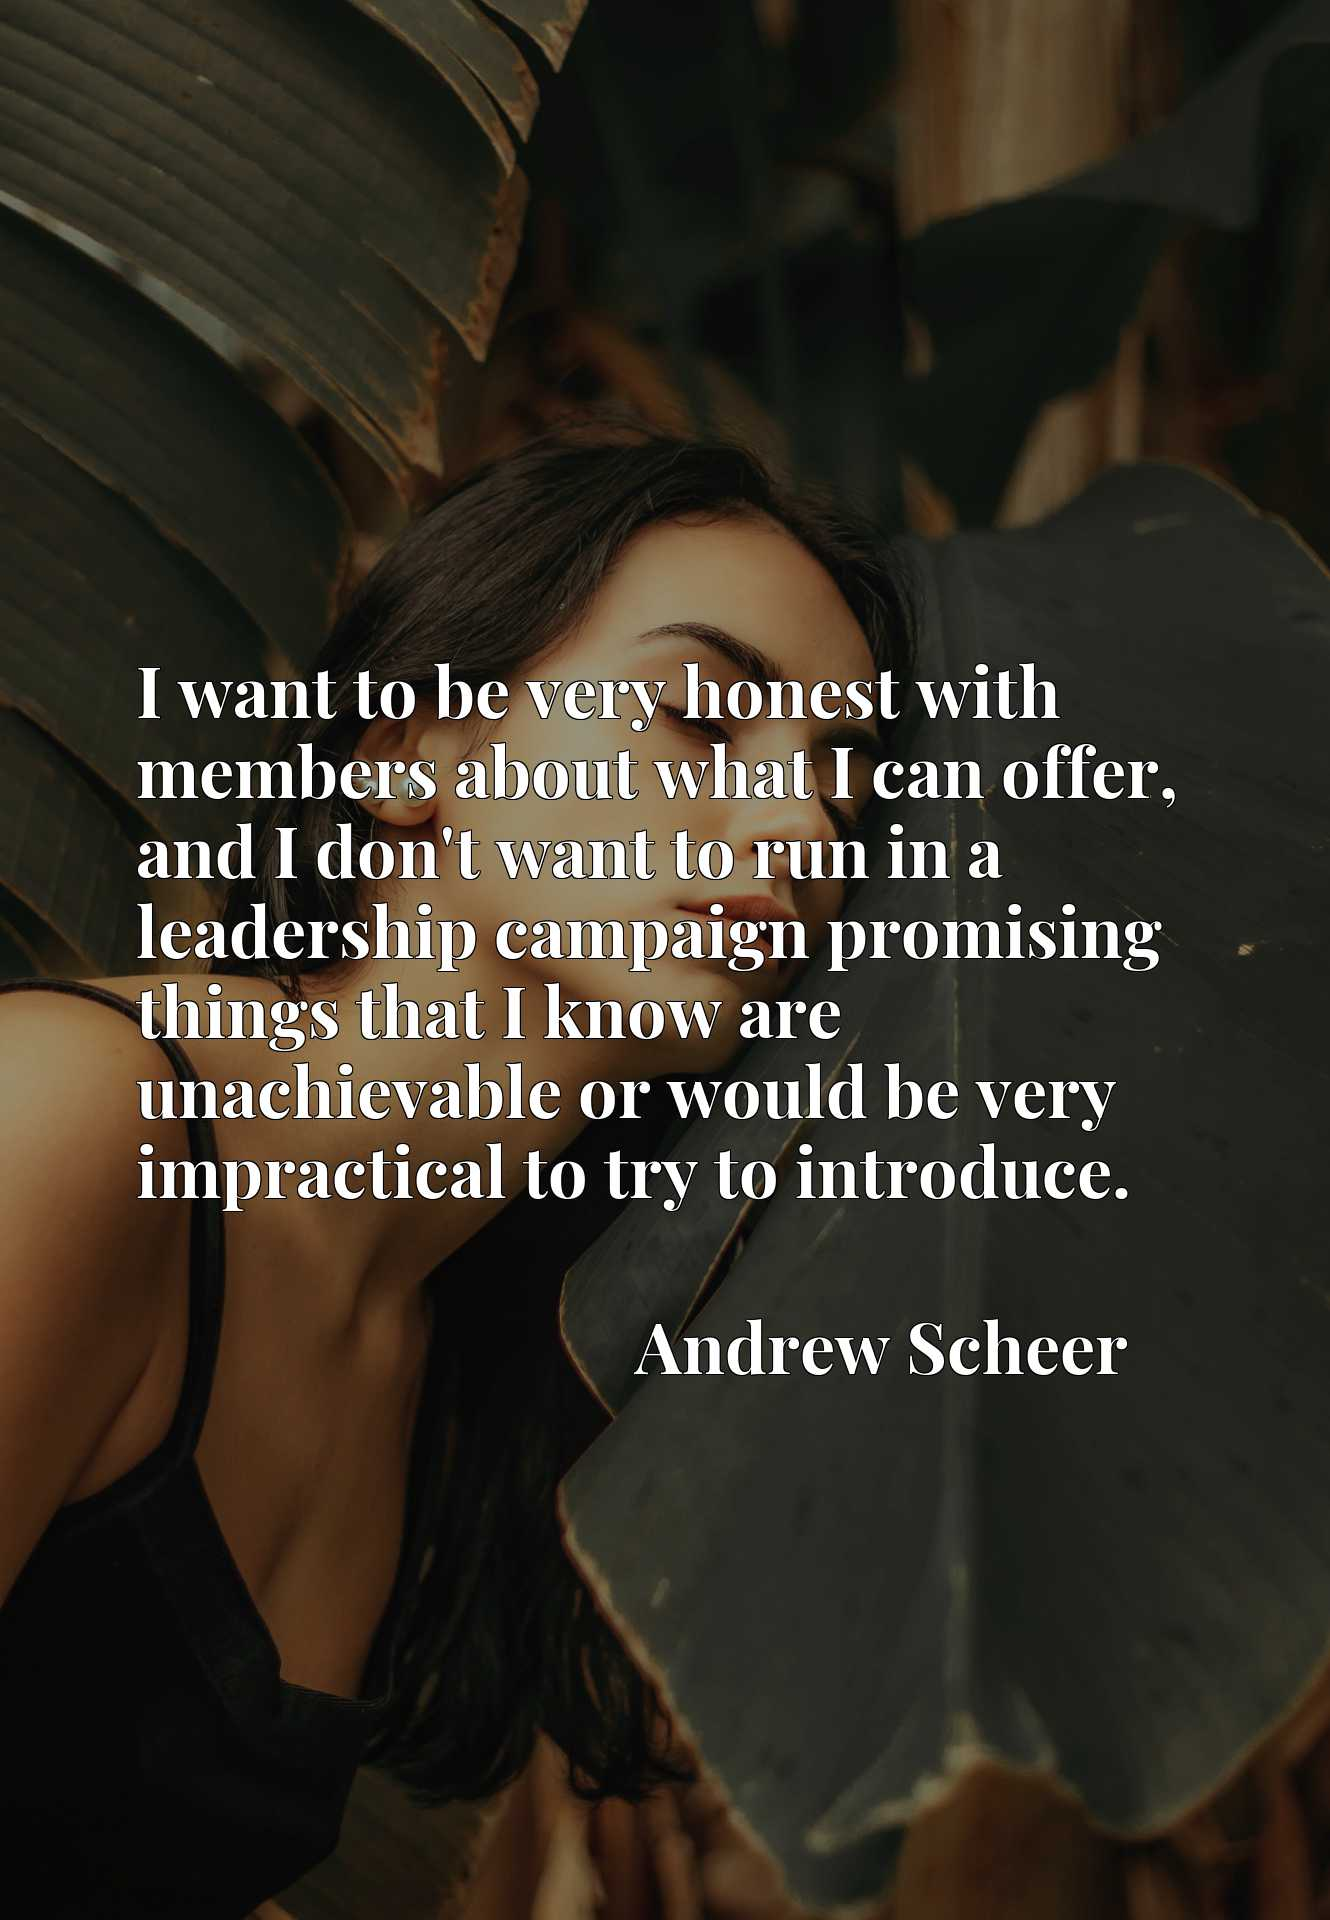 Quote Picture :I want to be very honest with members about what I can offer, and I don't want to run in a leadership campaign promising things that I know are unachievable or would be very impractical to try to introduce.